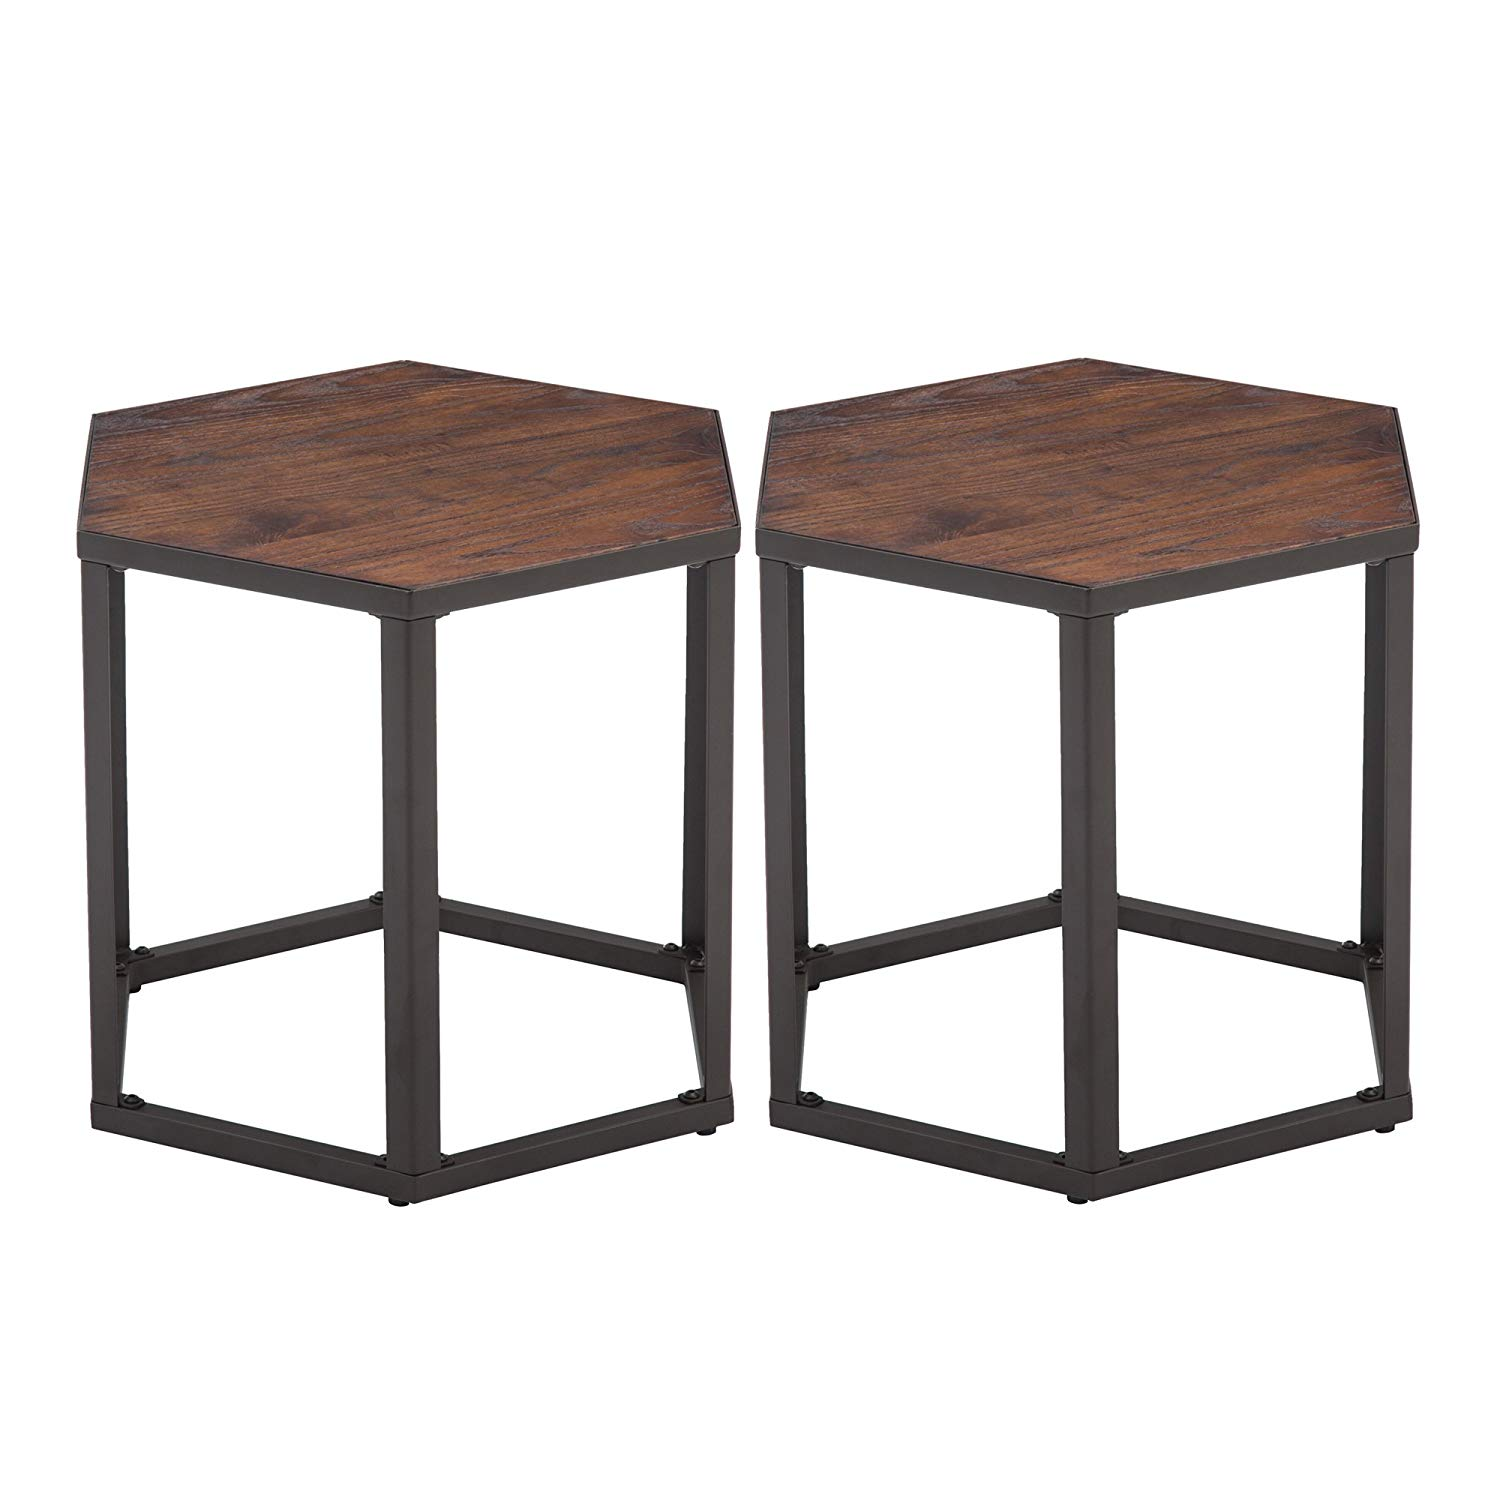 set end tables hexagon modern leisure wood coffee table and with metal legs for living room balcony office kitchen dining homesense footstool small glass rooms leather furniture